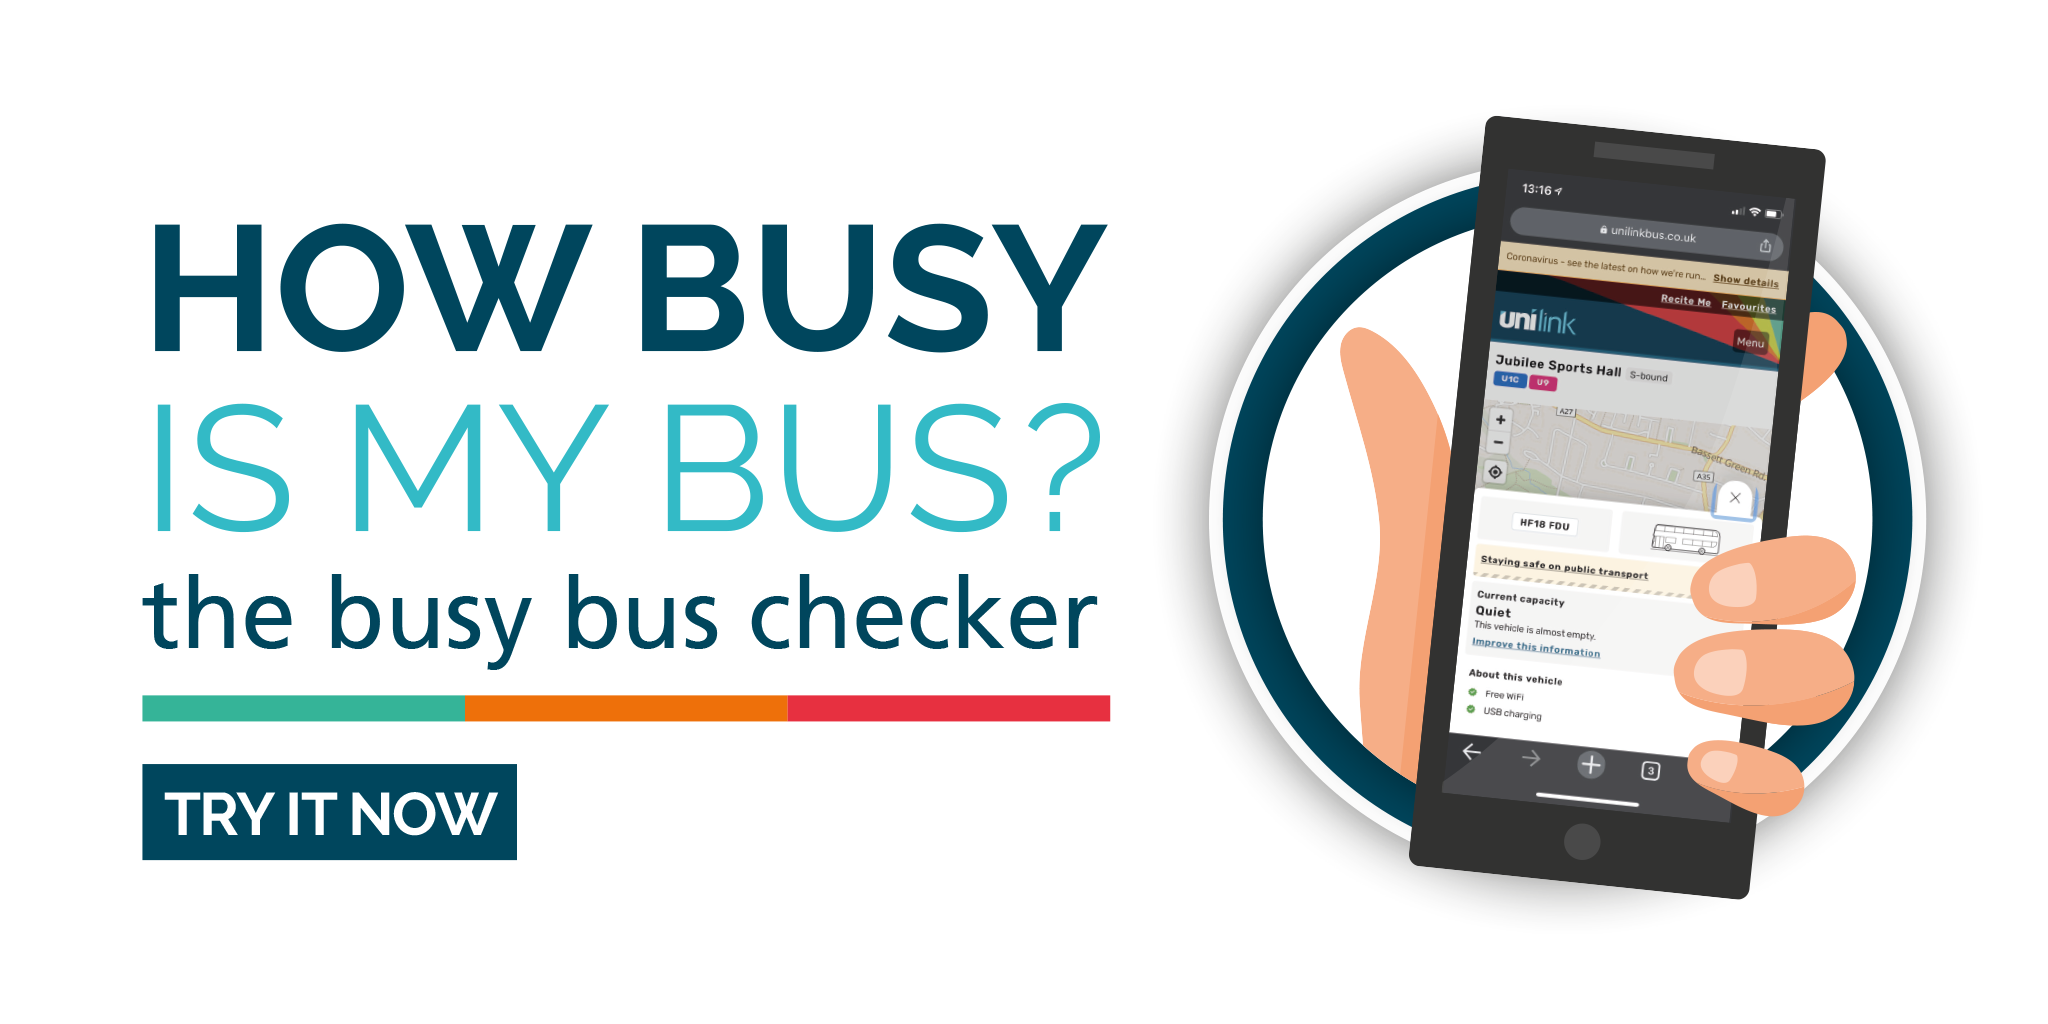 Image reading 'How busy is my bus? The busy bus checker'